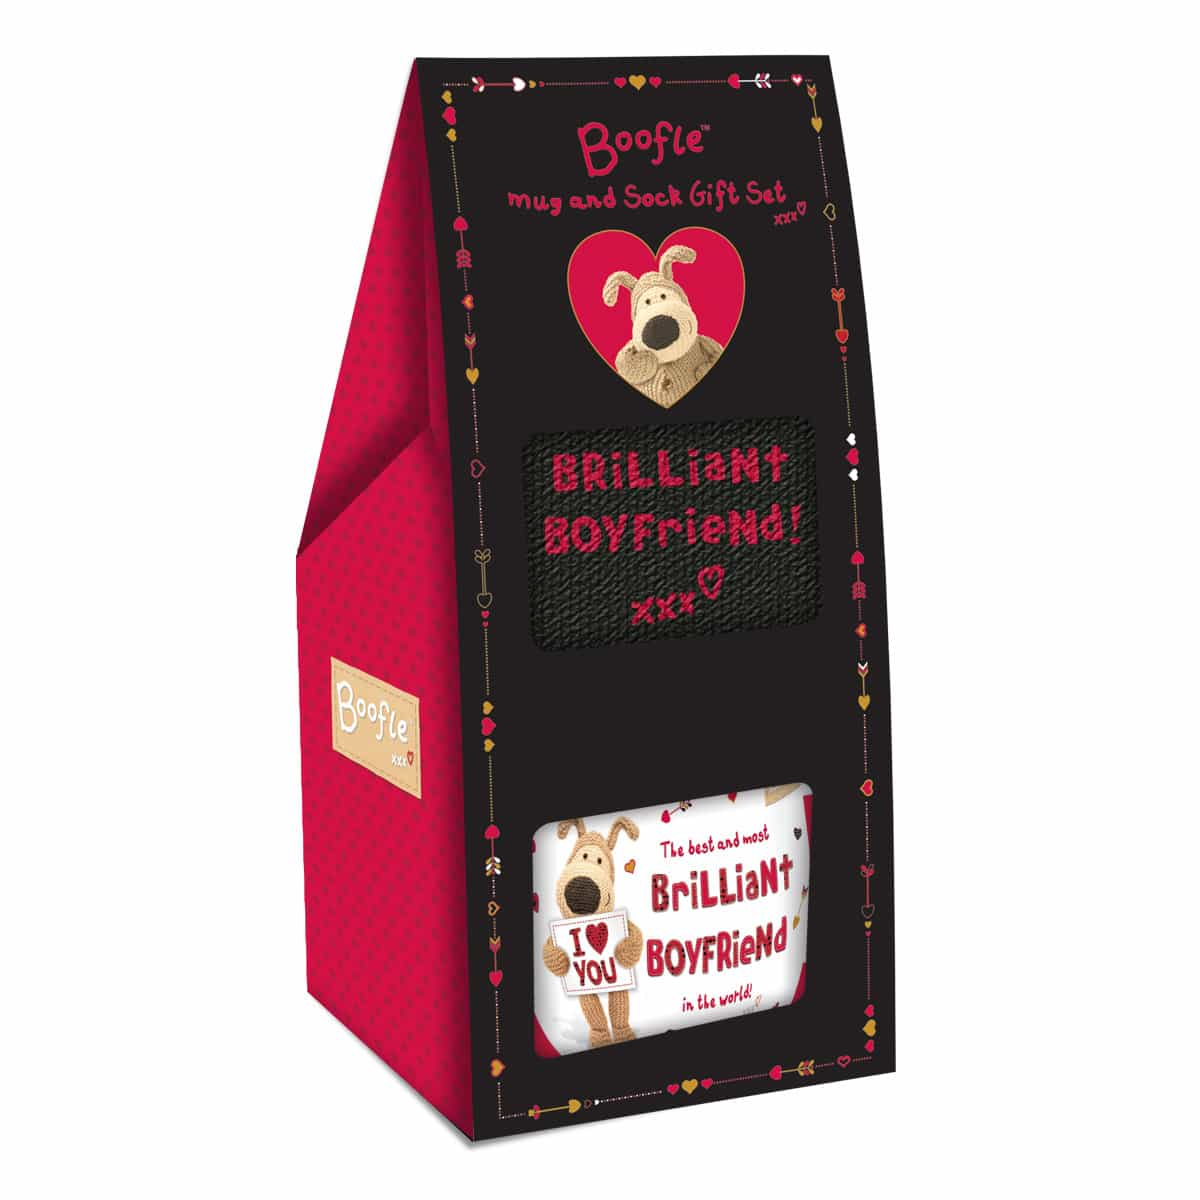 newly dating valentines ideas Say no to boring chocolates this valentine's day 14 gift ideas for someone you've only been dating for a 13 non-awkward valentine's day date ideas for new.